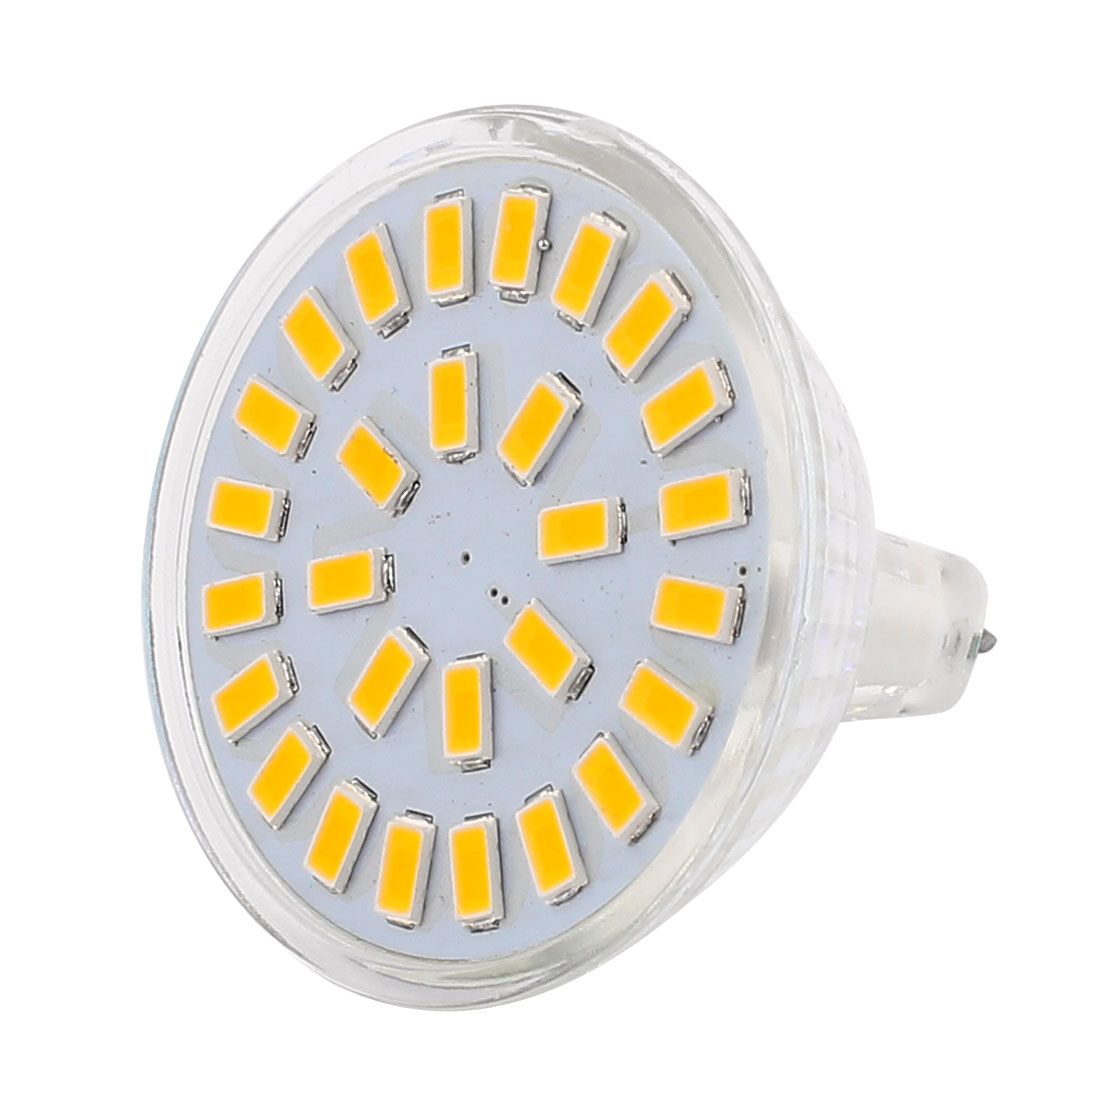 220V-240V 5W MR16 5730 SMD 28 LEDs LED Bulb Down Light Spotlight Lamp Warm White